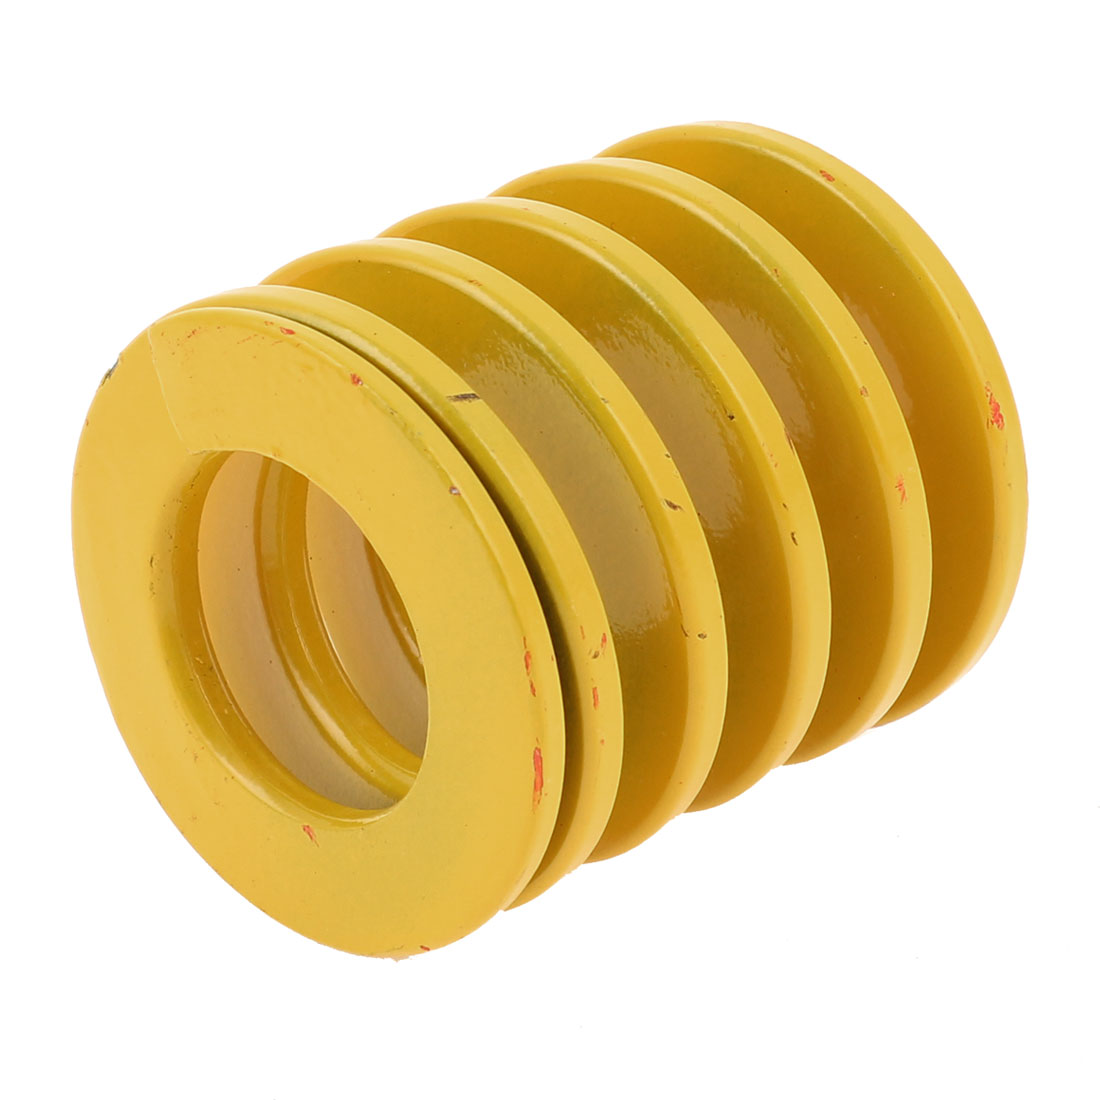 Yellow Alloy Steel Light Load Press Flat Coil Compression Die Spring 50mm x 25mm x 50mm